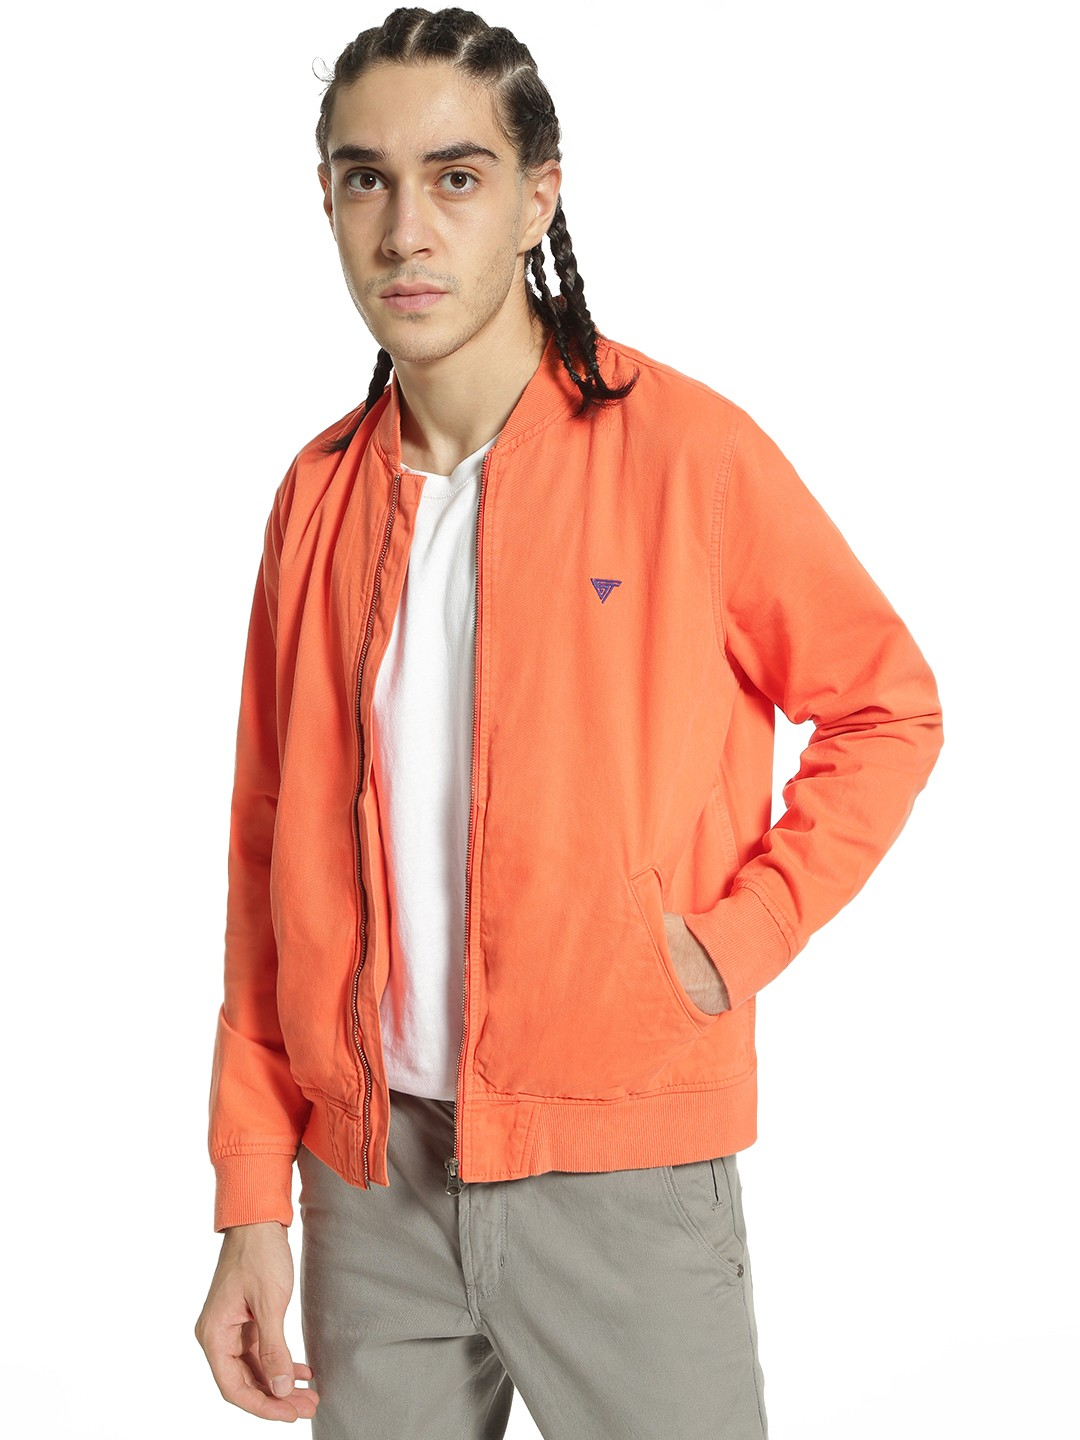 Blue Saint Orange Overdyed Long Sleeve Bomber Jacket 1